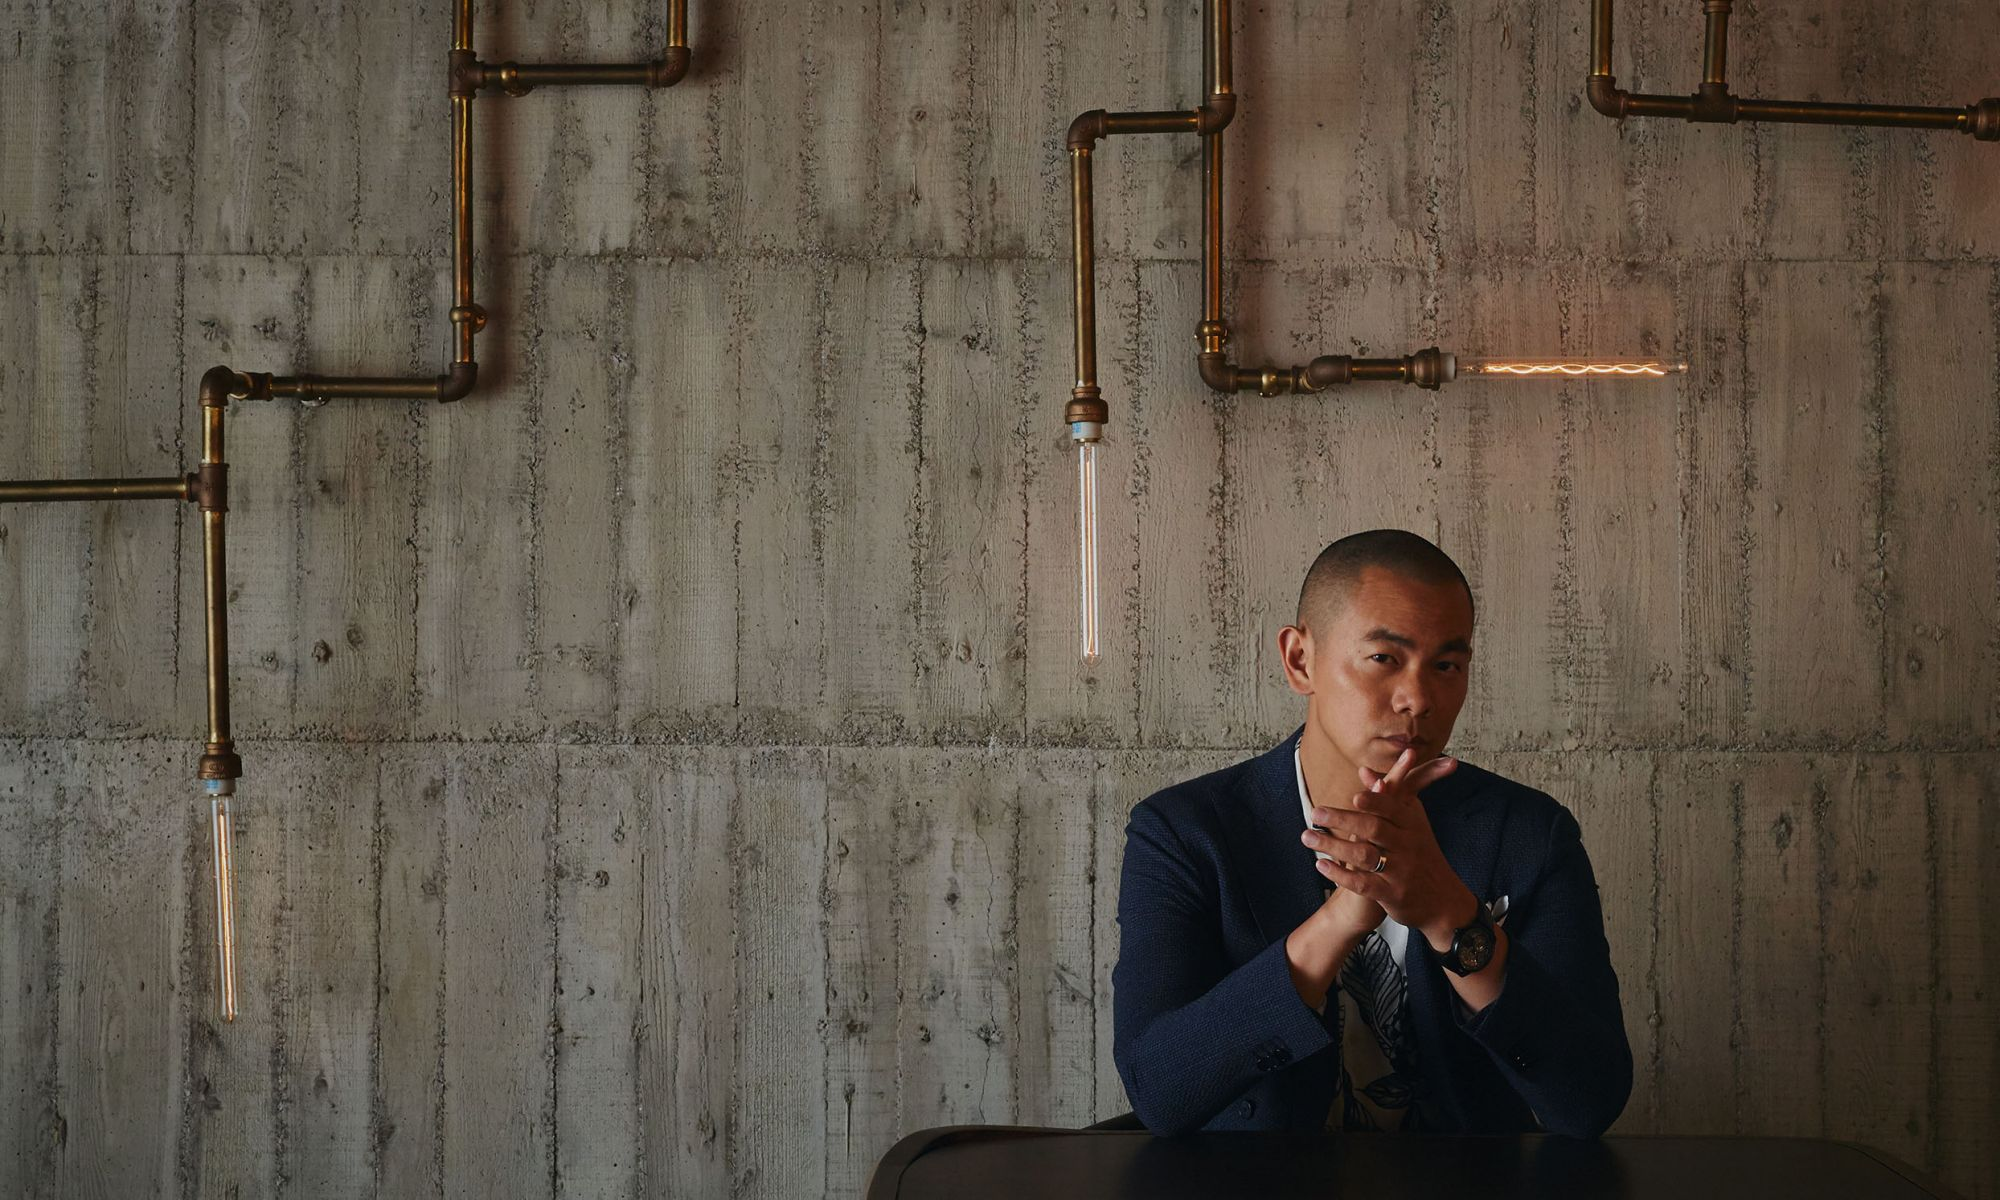 Taiwanese Chef-Restaurateur André Chiang on Why He's Not Afraid of Change